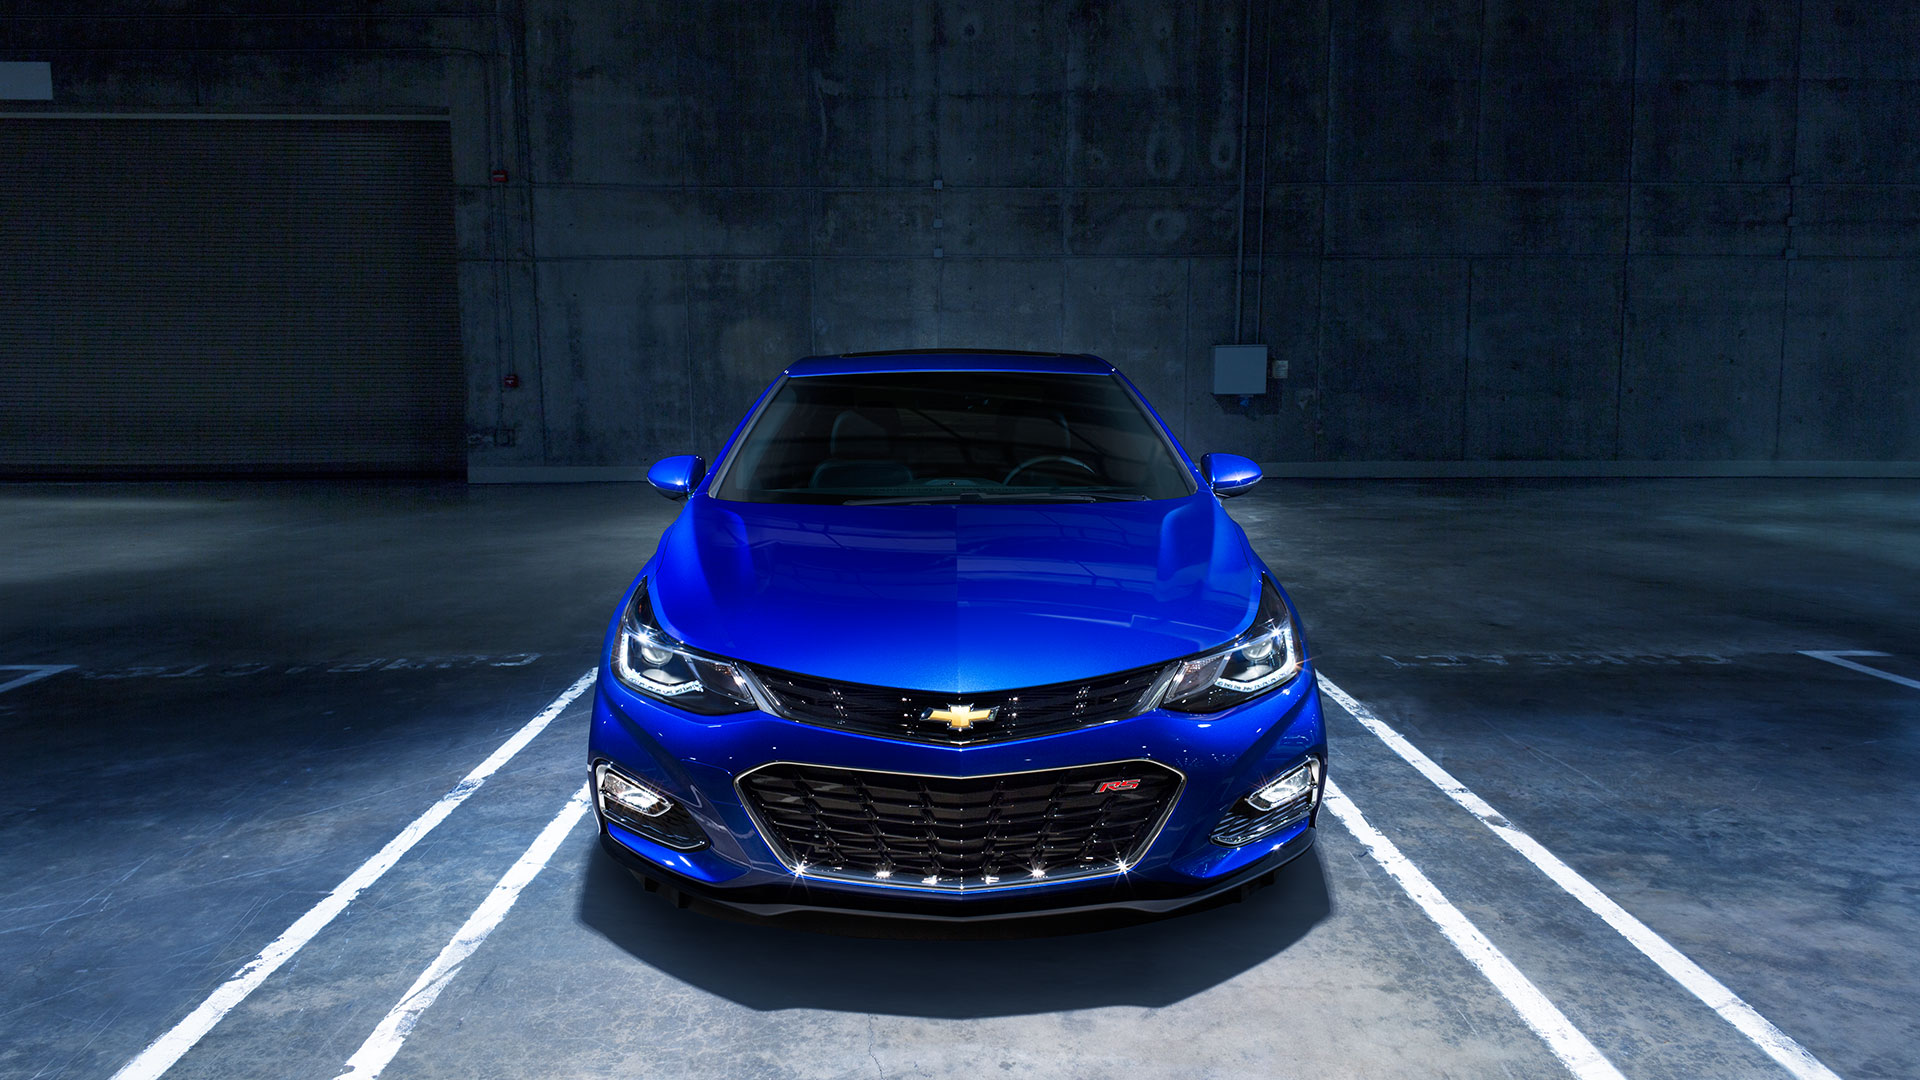 Chevy Cruze Vs Ford Fusion Why The Chevy Wins Head To Head